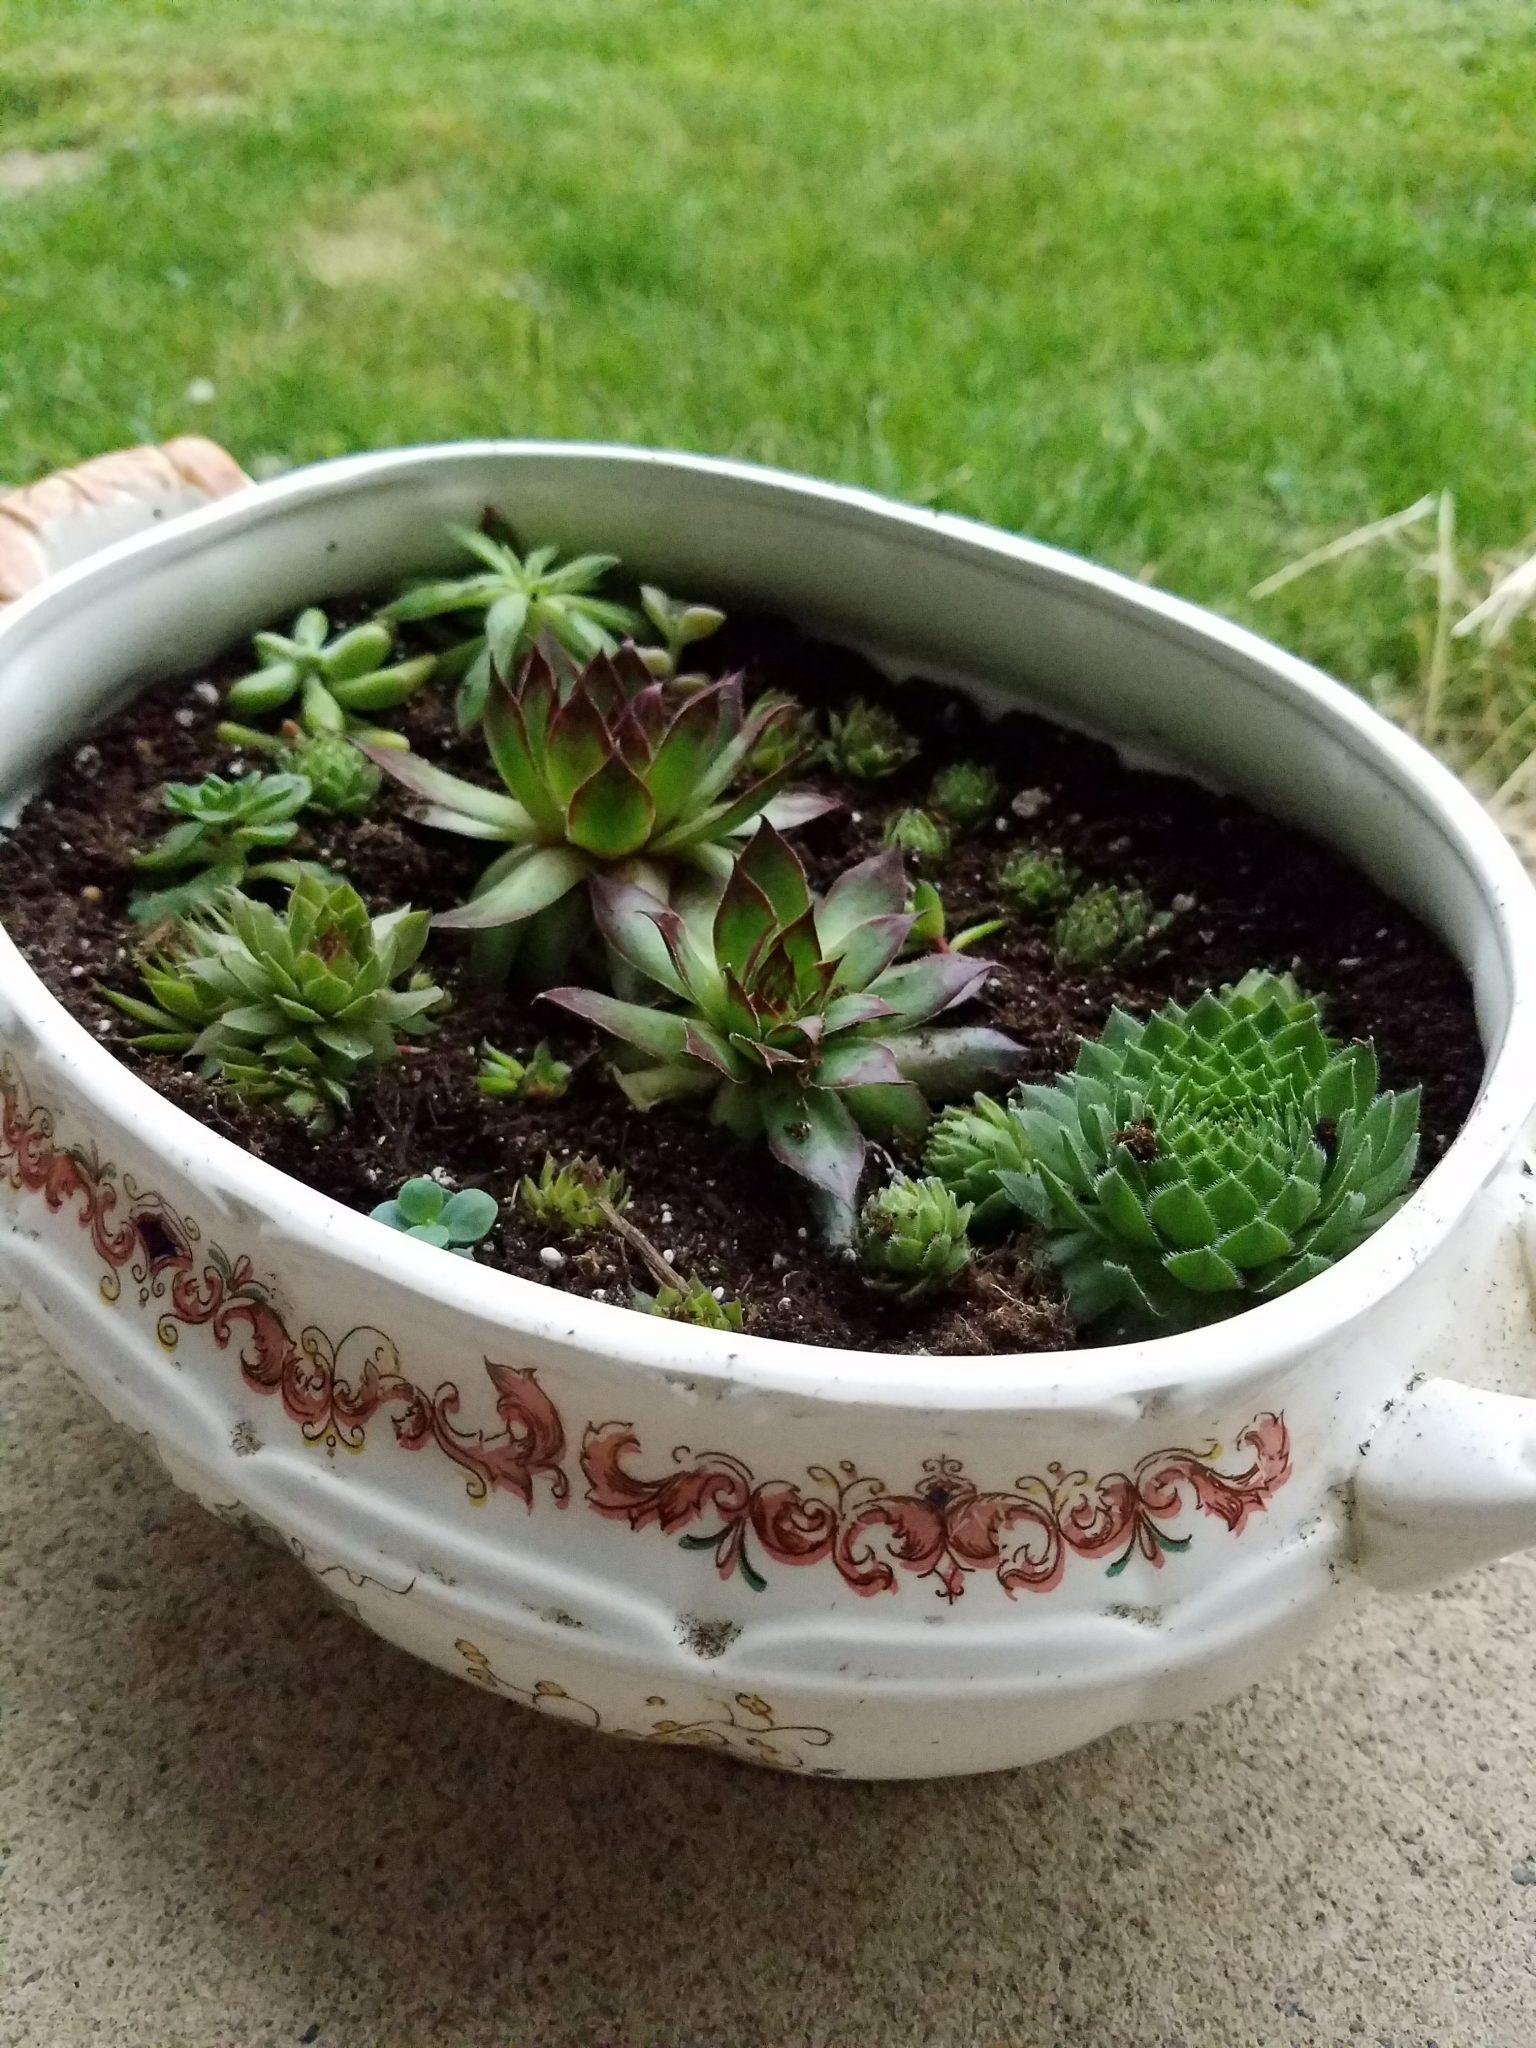 Using unique household items can create a special planters. Use family heirlooms or pieces that you find from yard sales to create a beautiful centerpiece.